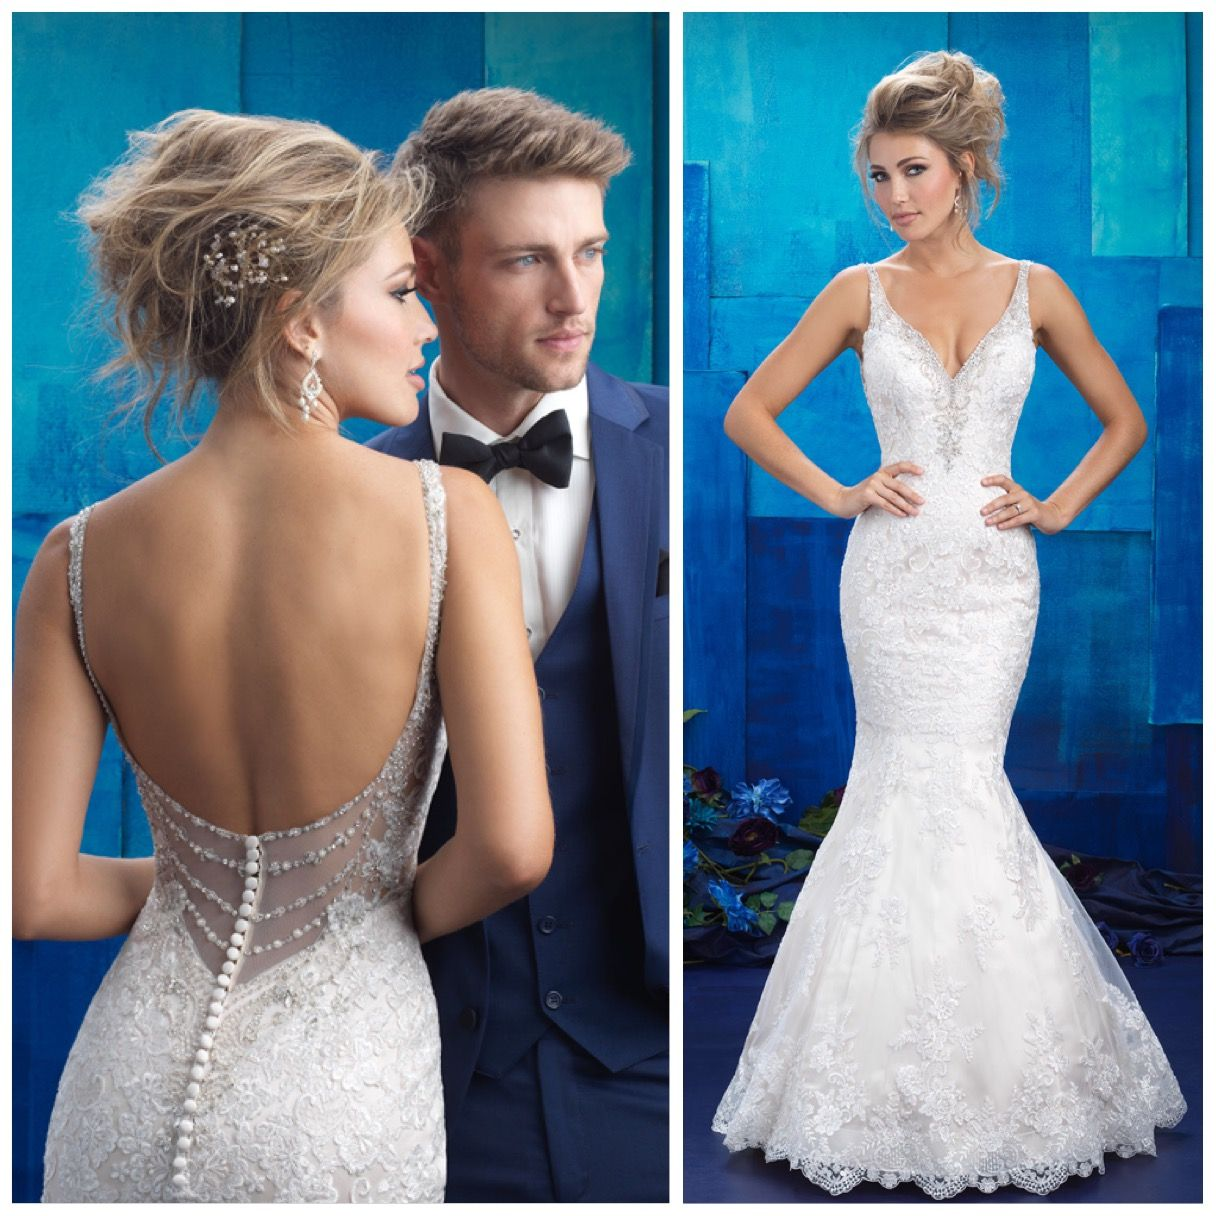 Form Fitting Wedding Gowns: Dress Of The Week: This Allure Bridals Gown Features Lace